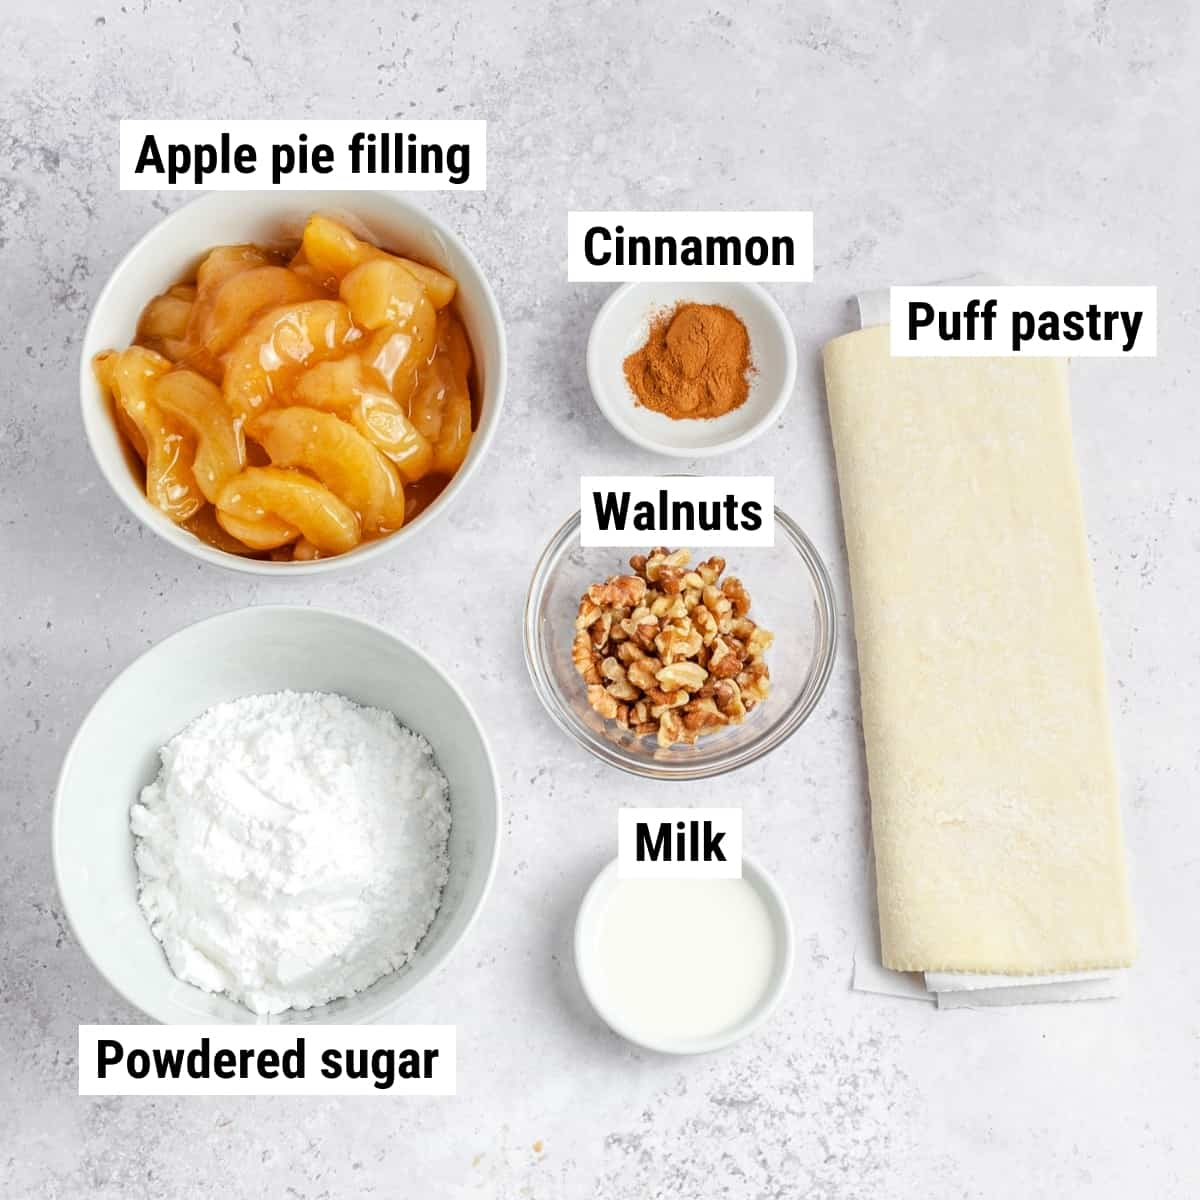 The ingredients used to make apply pie puff pastry spread out on a table.